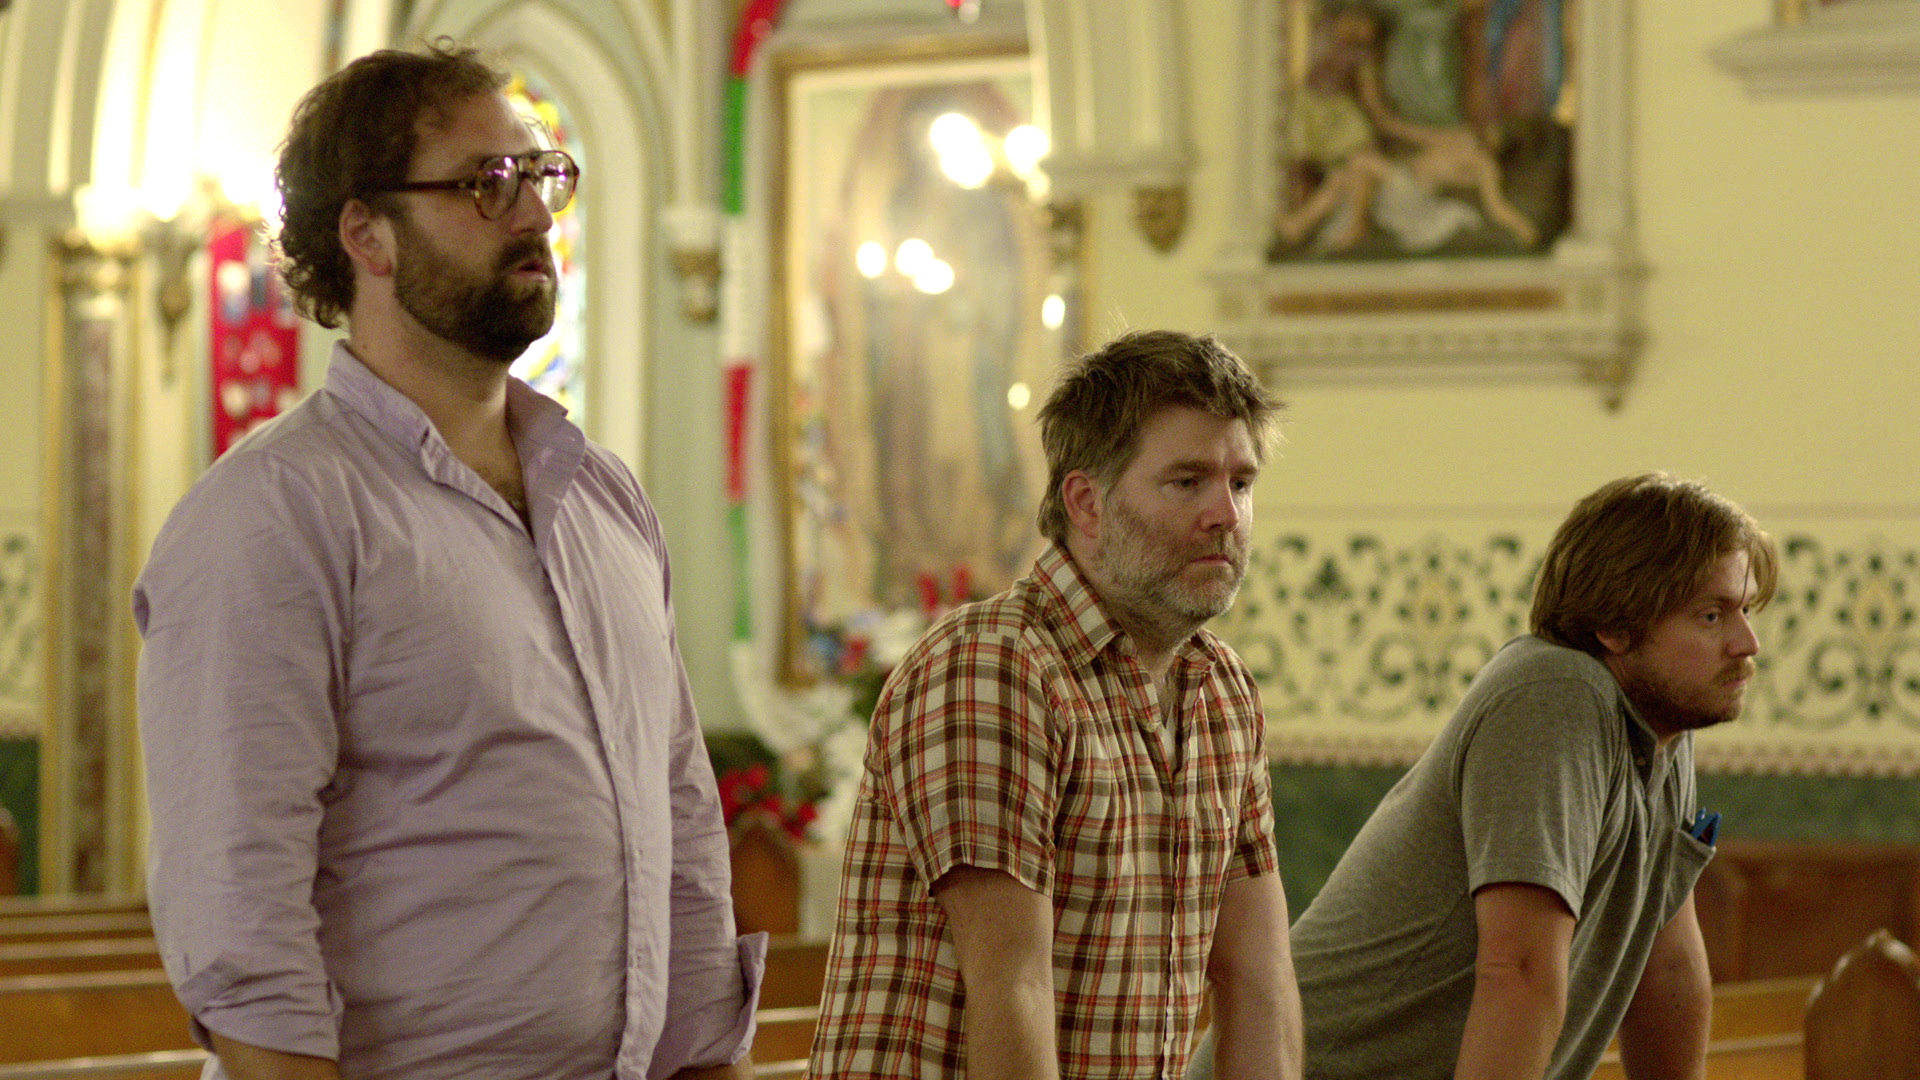 Eric-Wareheim-James-Murphy-and-Heidecker-in-THE-COMEDY-distributed-by-Tribeca-Film.-Photo-courtesy-of-Tribeca-Film..jpg